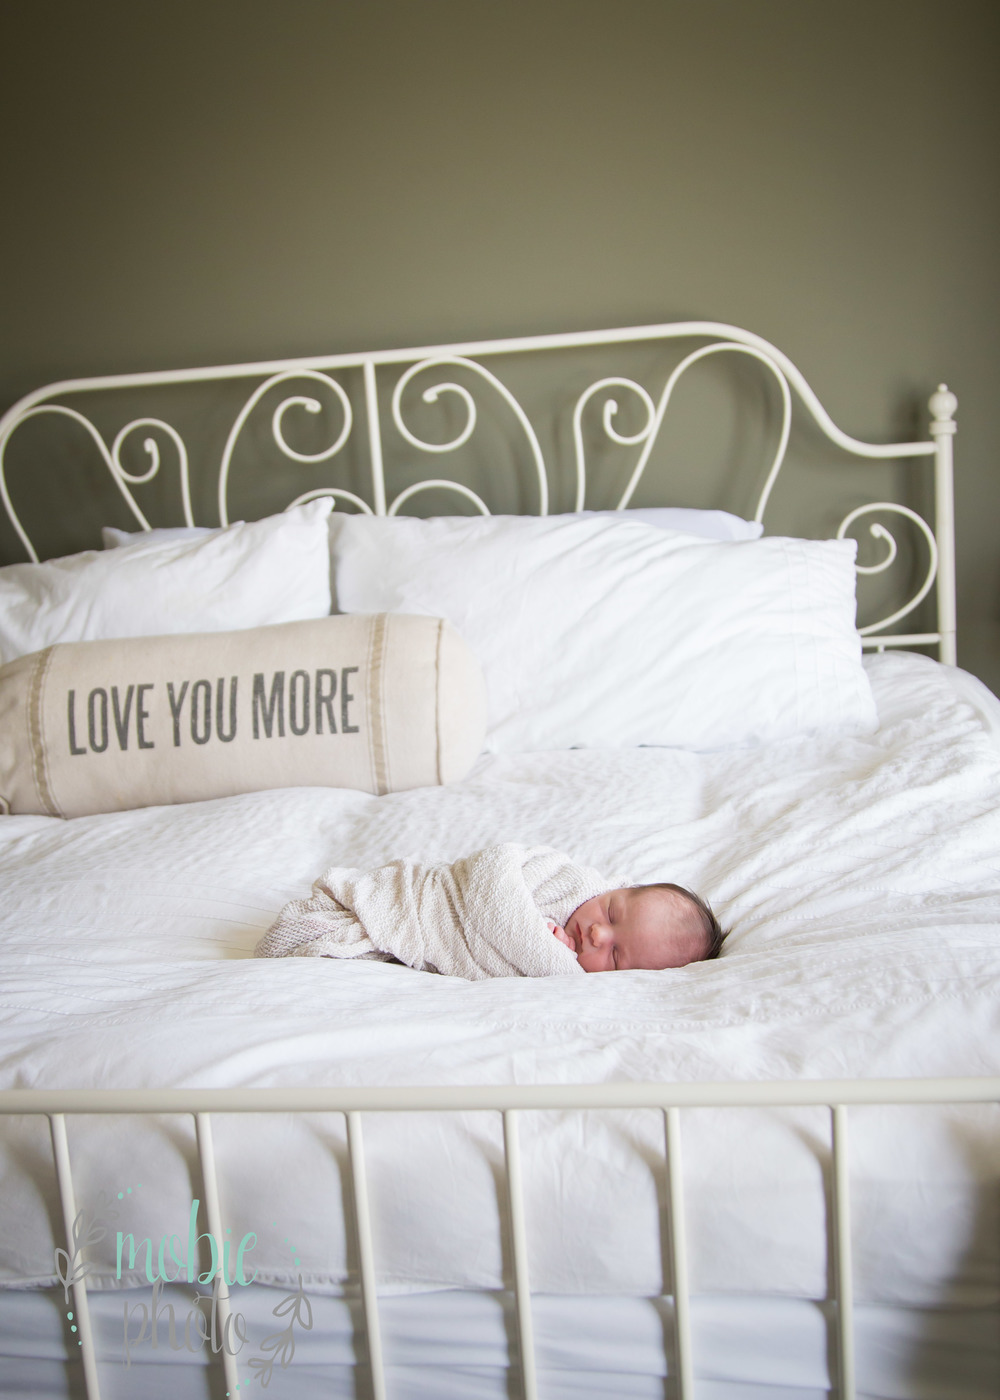 Mobie Photo - In-home Newborn Photography - Herriman, Utah